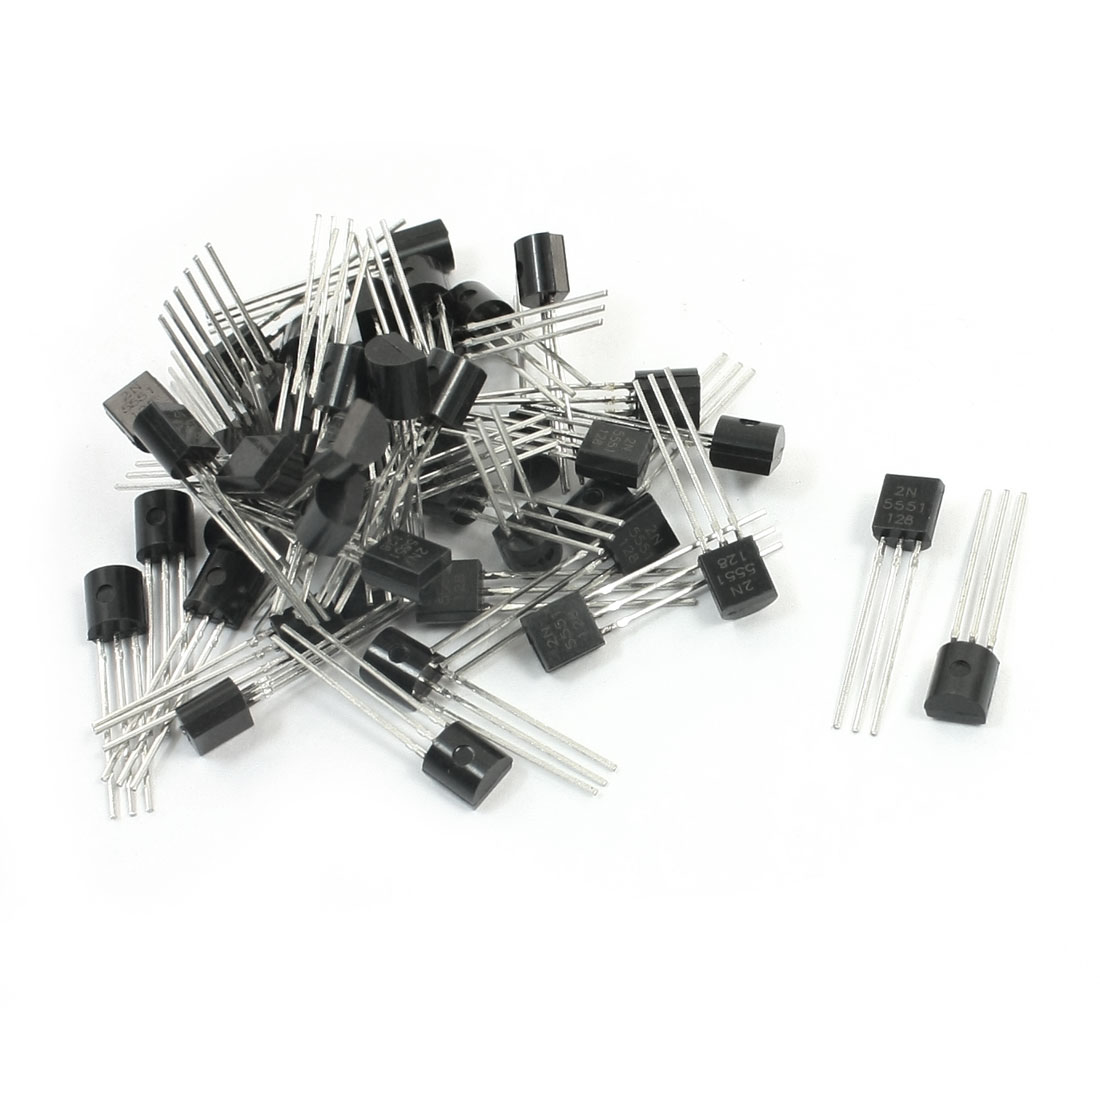 50pcs General Propose 2N5551 160V 600mA TO-92 Package NPN Transistor